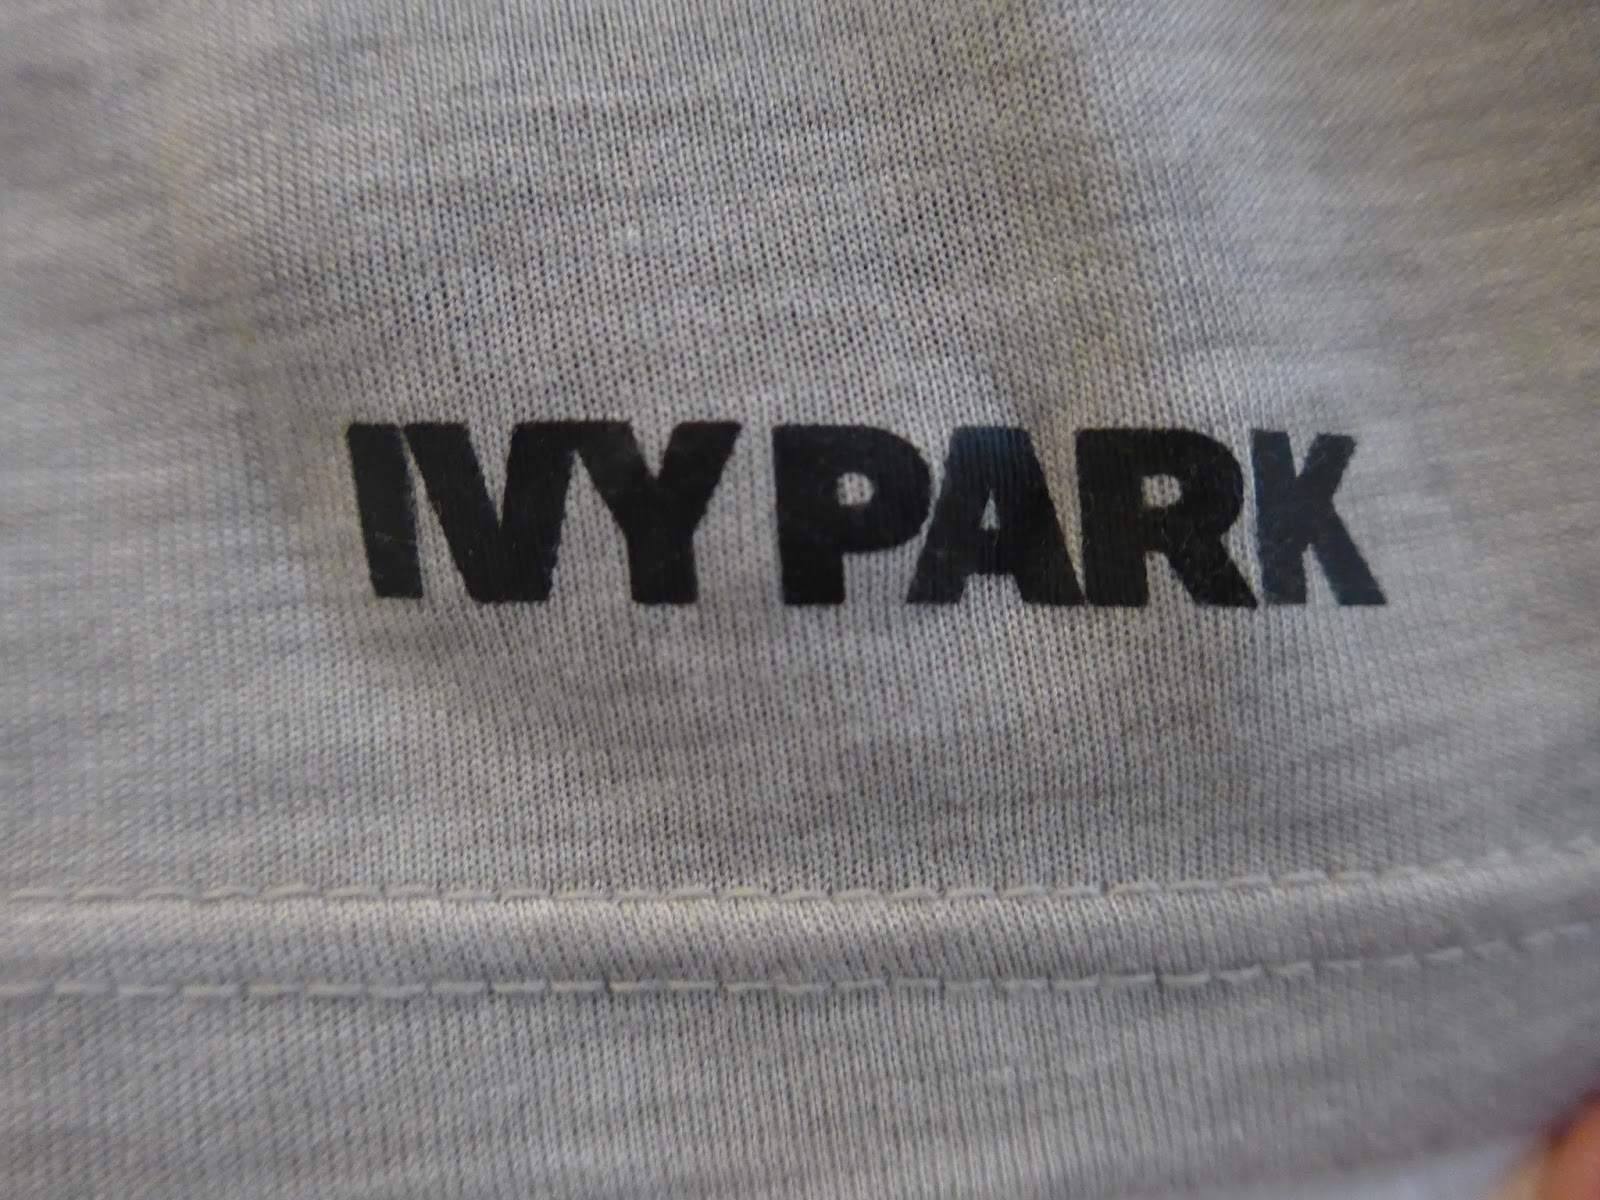 ec19e551bda10 TOPSHOP: Ivy Park Haul | Pretty Little Gym Addict